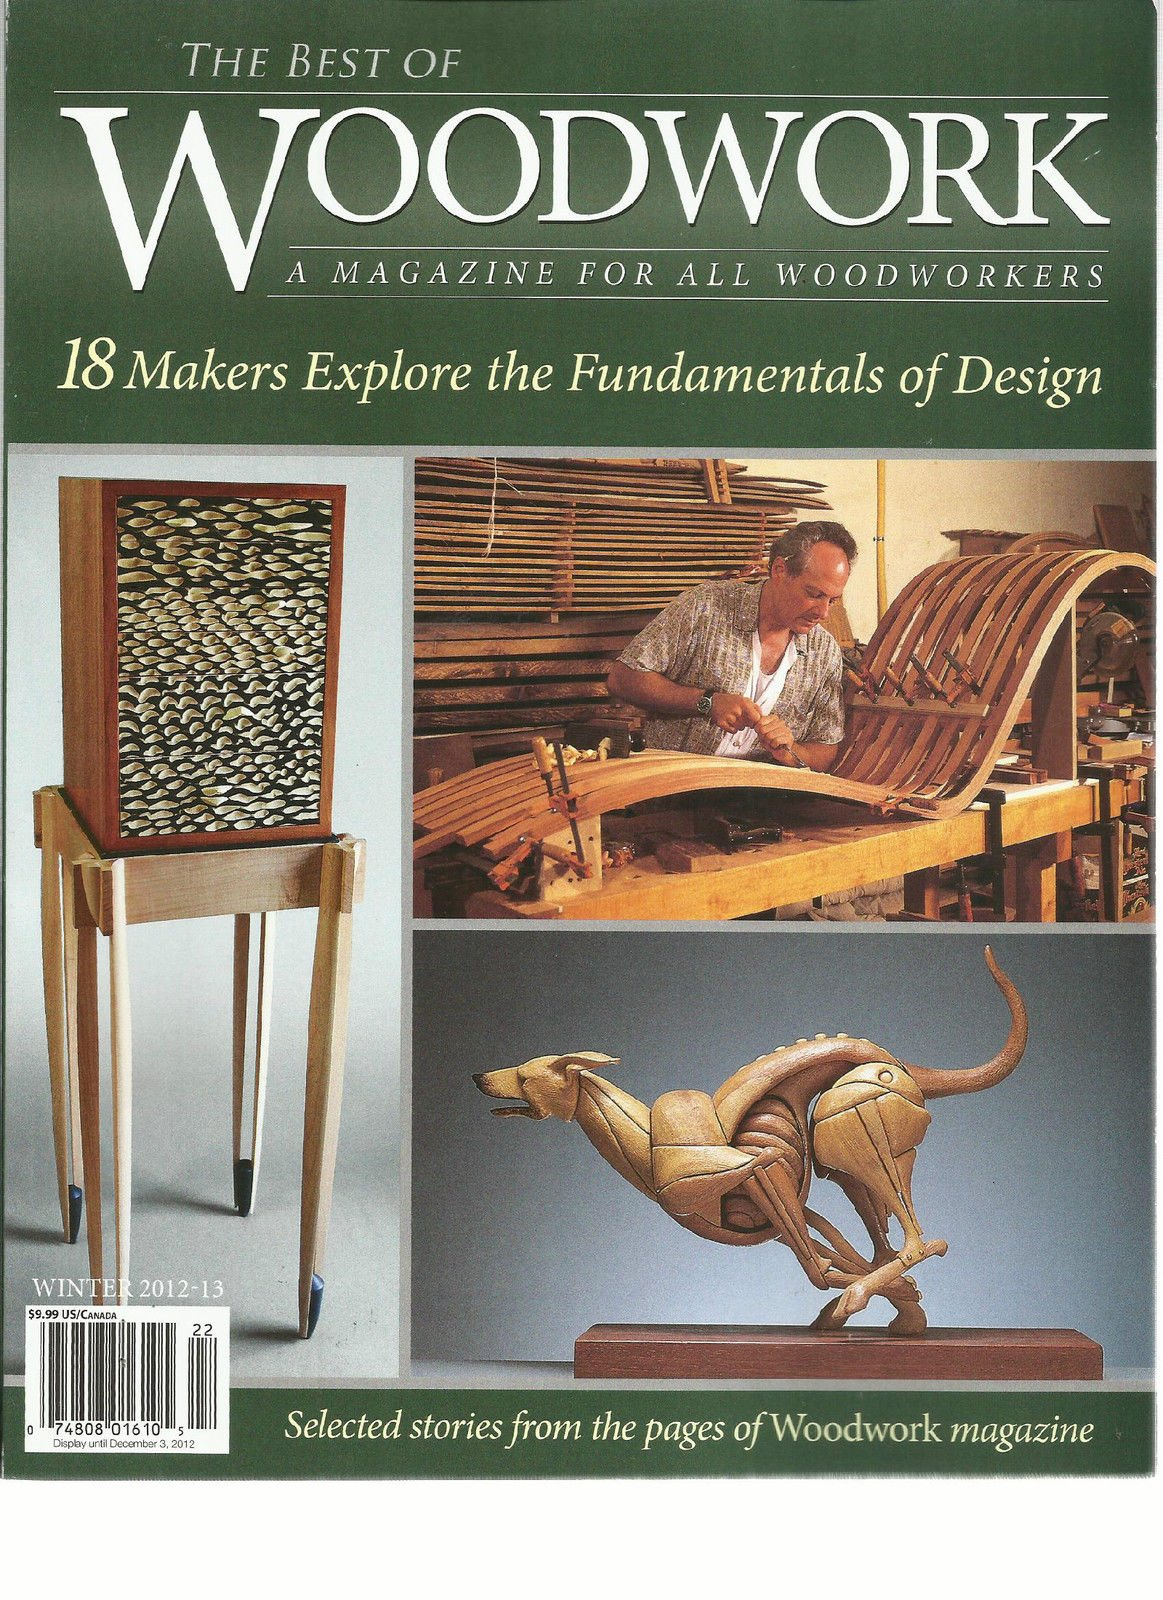 THE BEST OF WOOD WORK, WINTER, 2012/2013 (A MAGAZINE FOR ALL WOOD WORKERS)